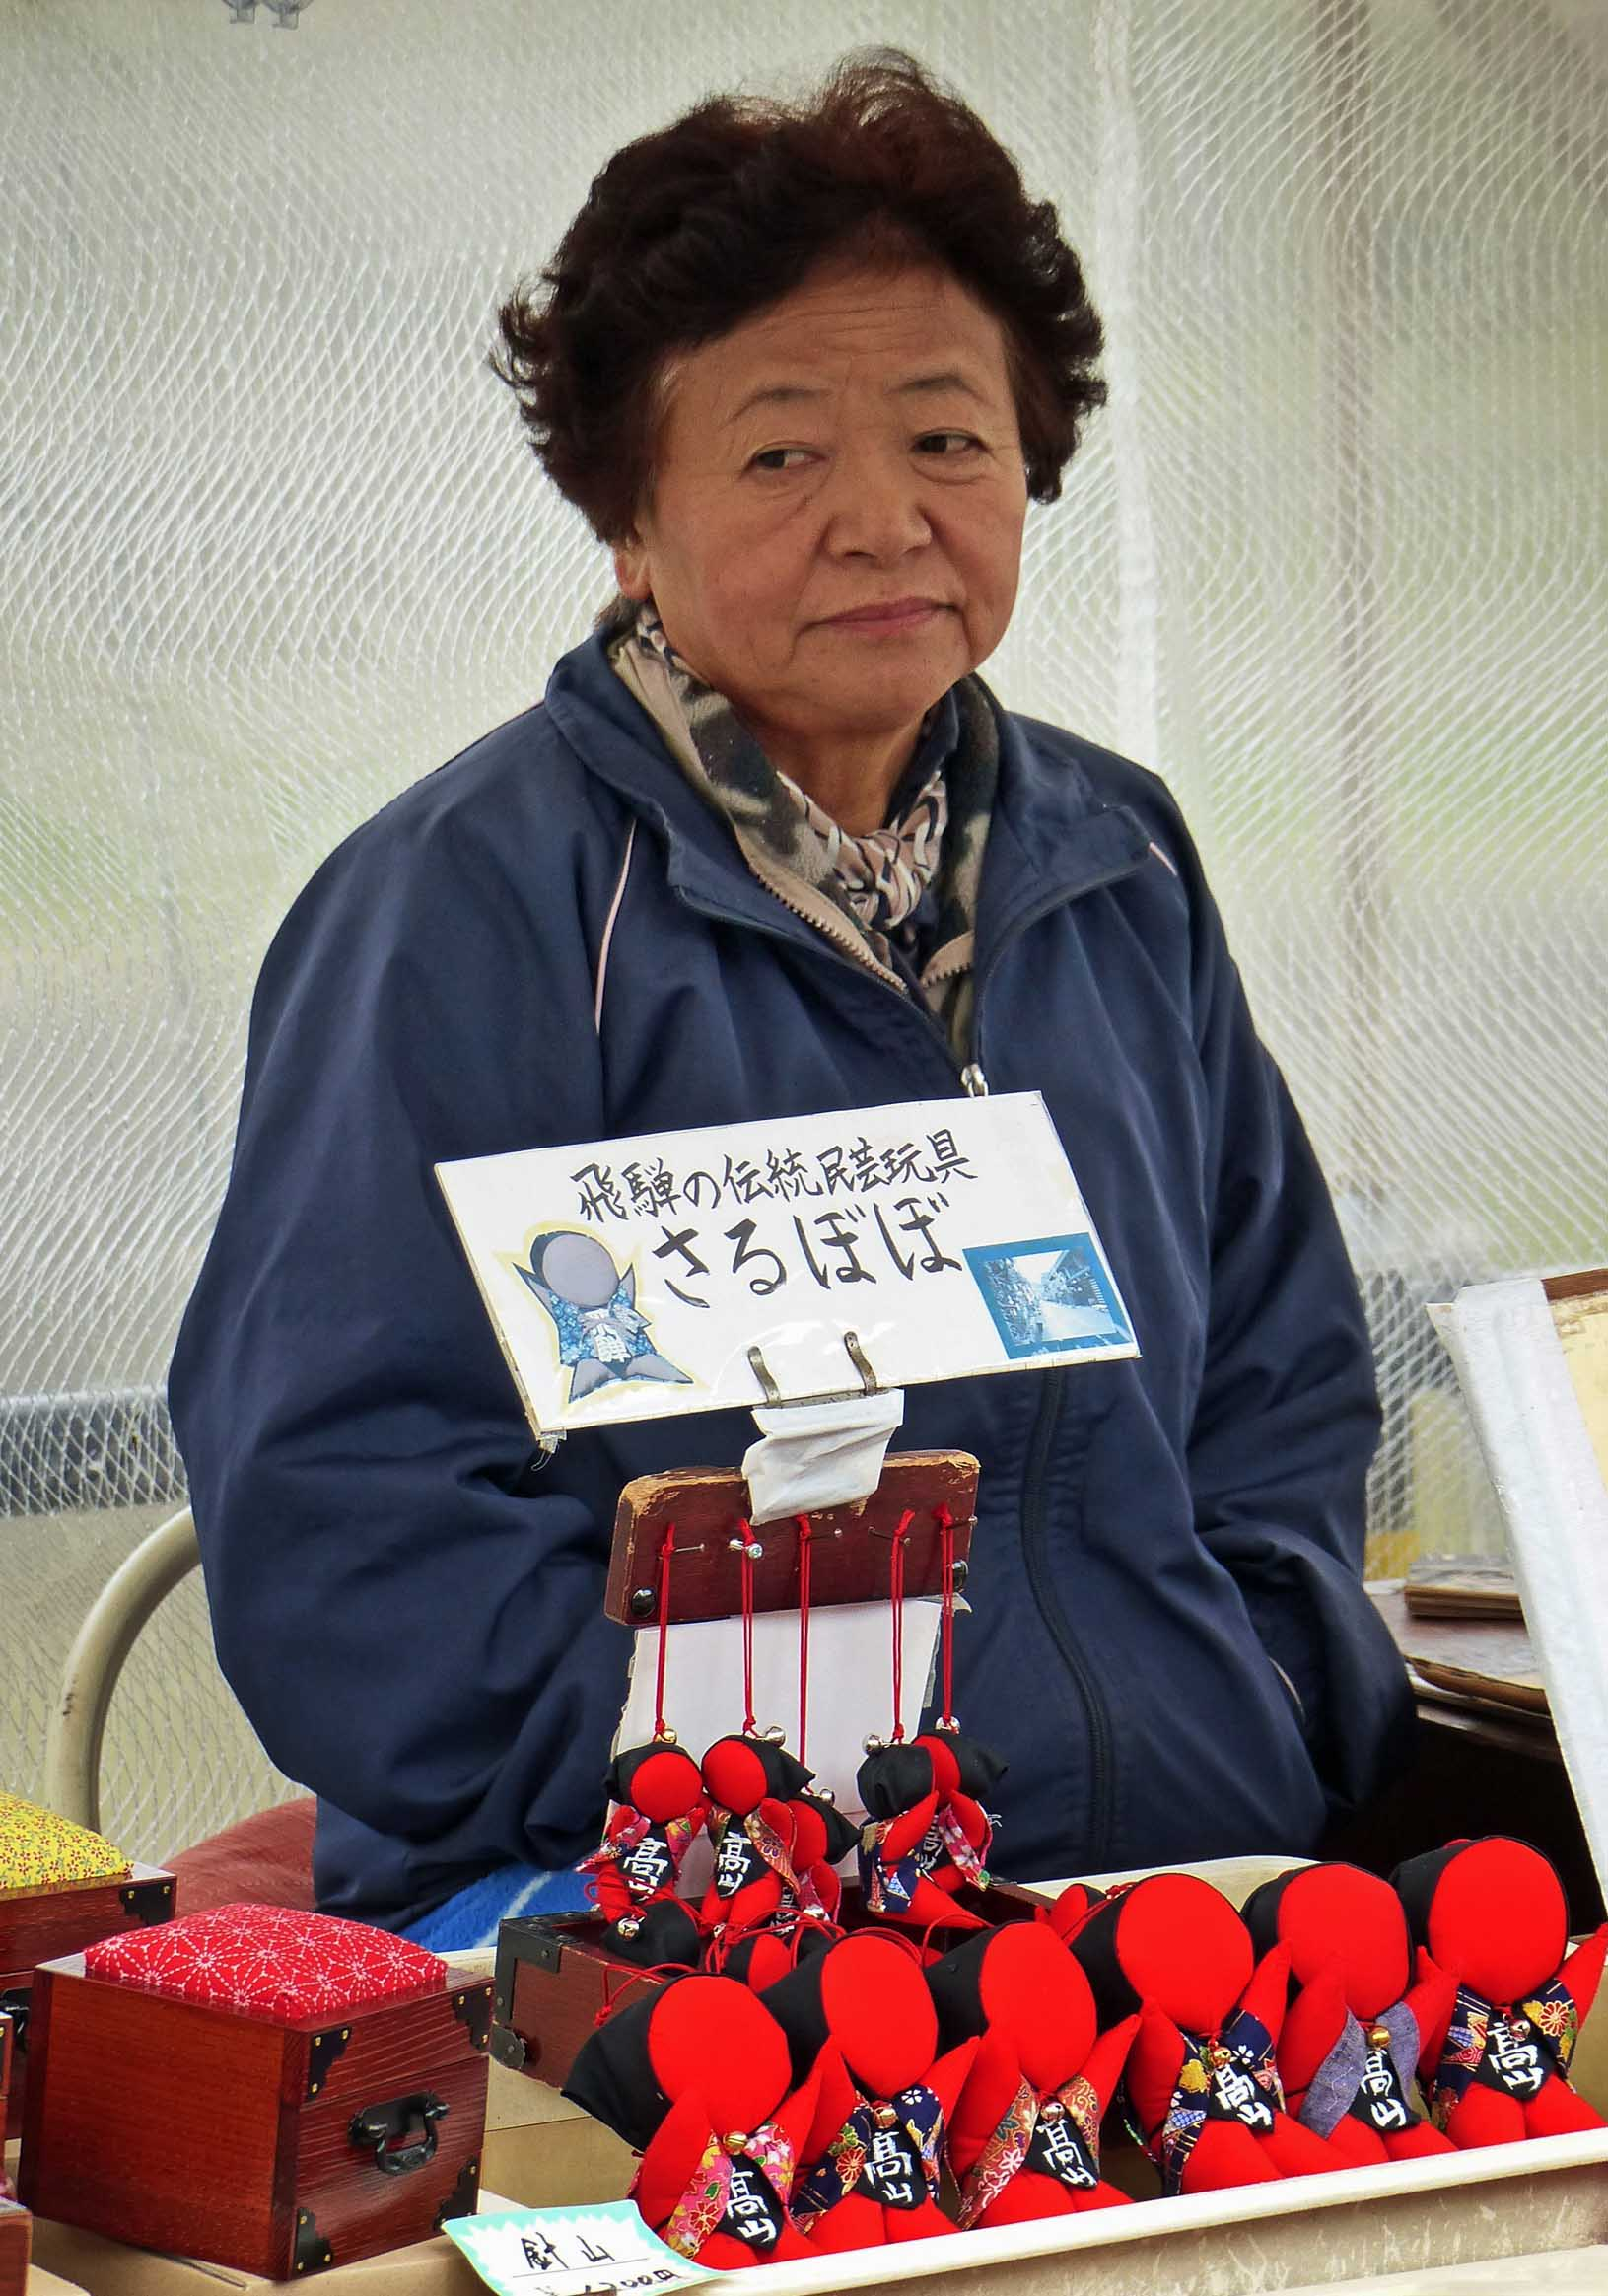 Lady selling small souvenirs